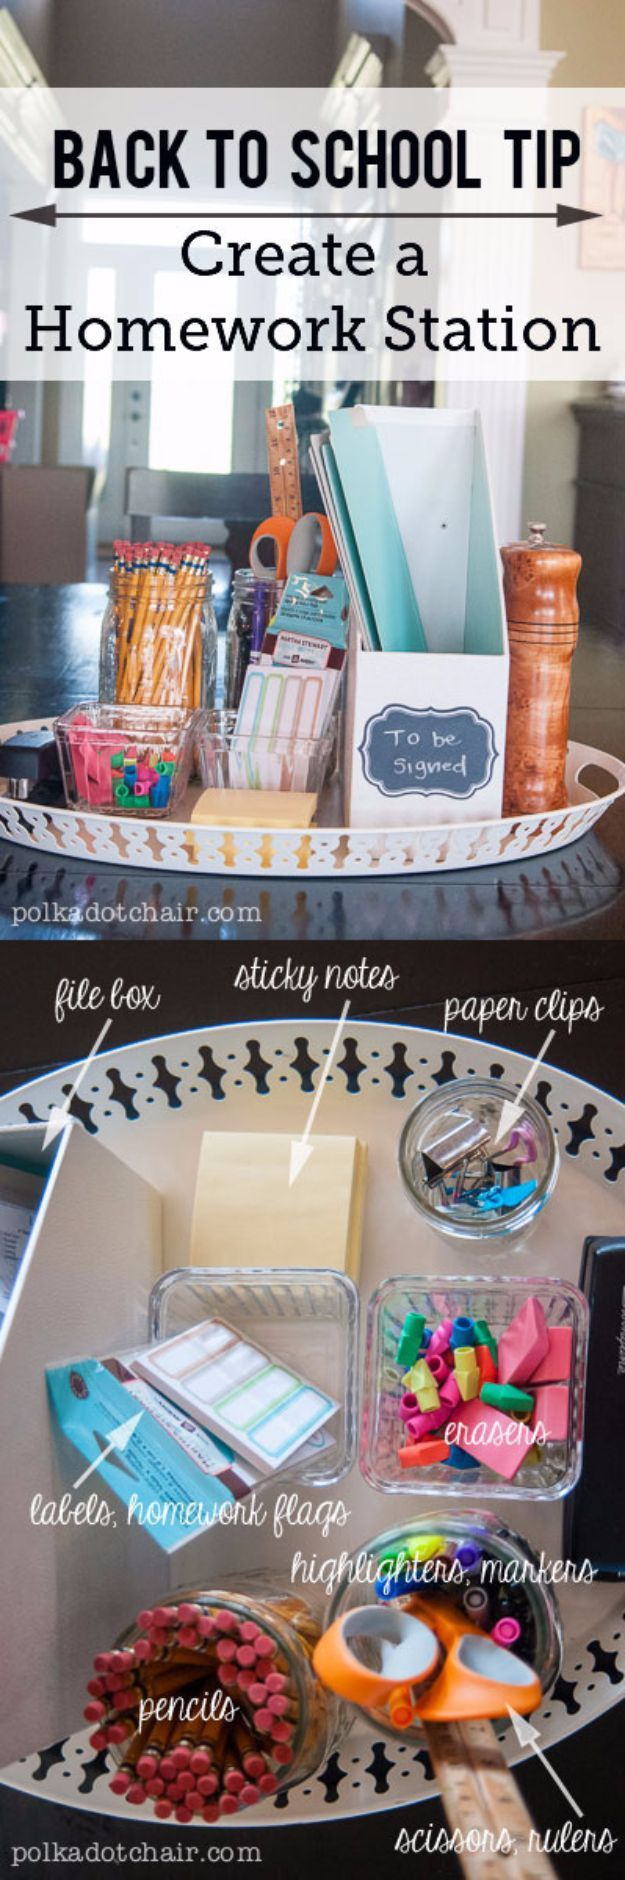 20 Awesome Back To School DIY Ideas That You Have To Try